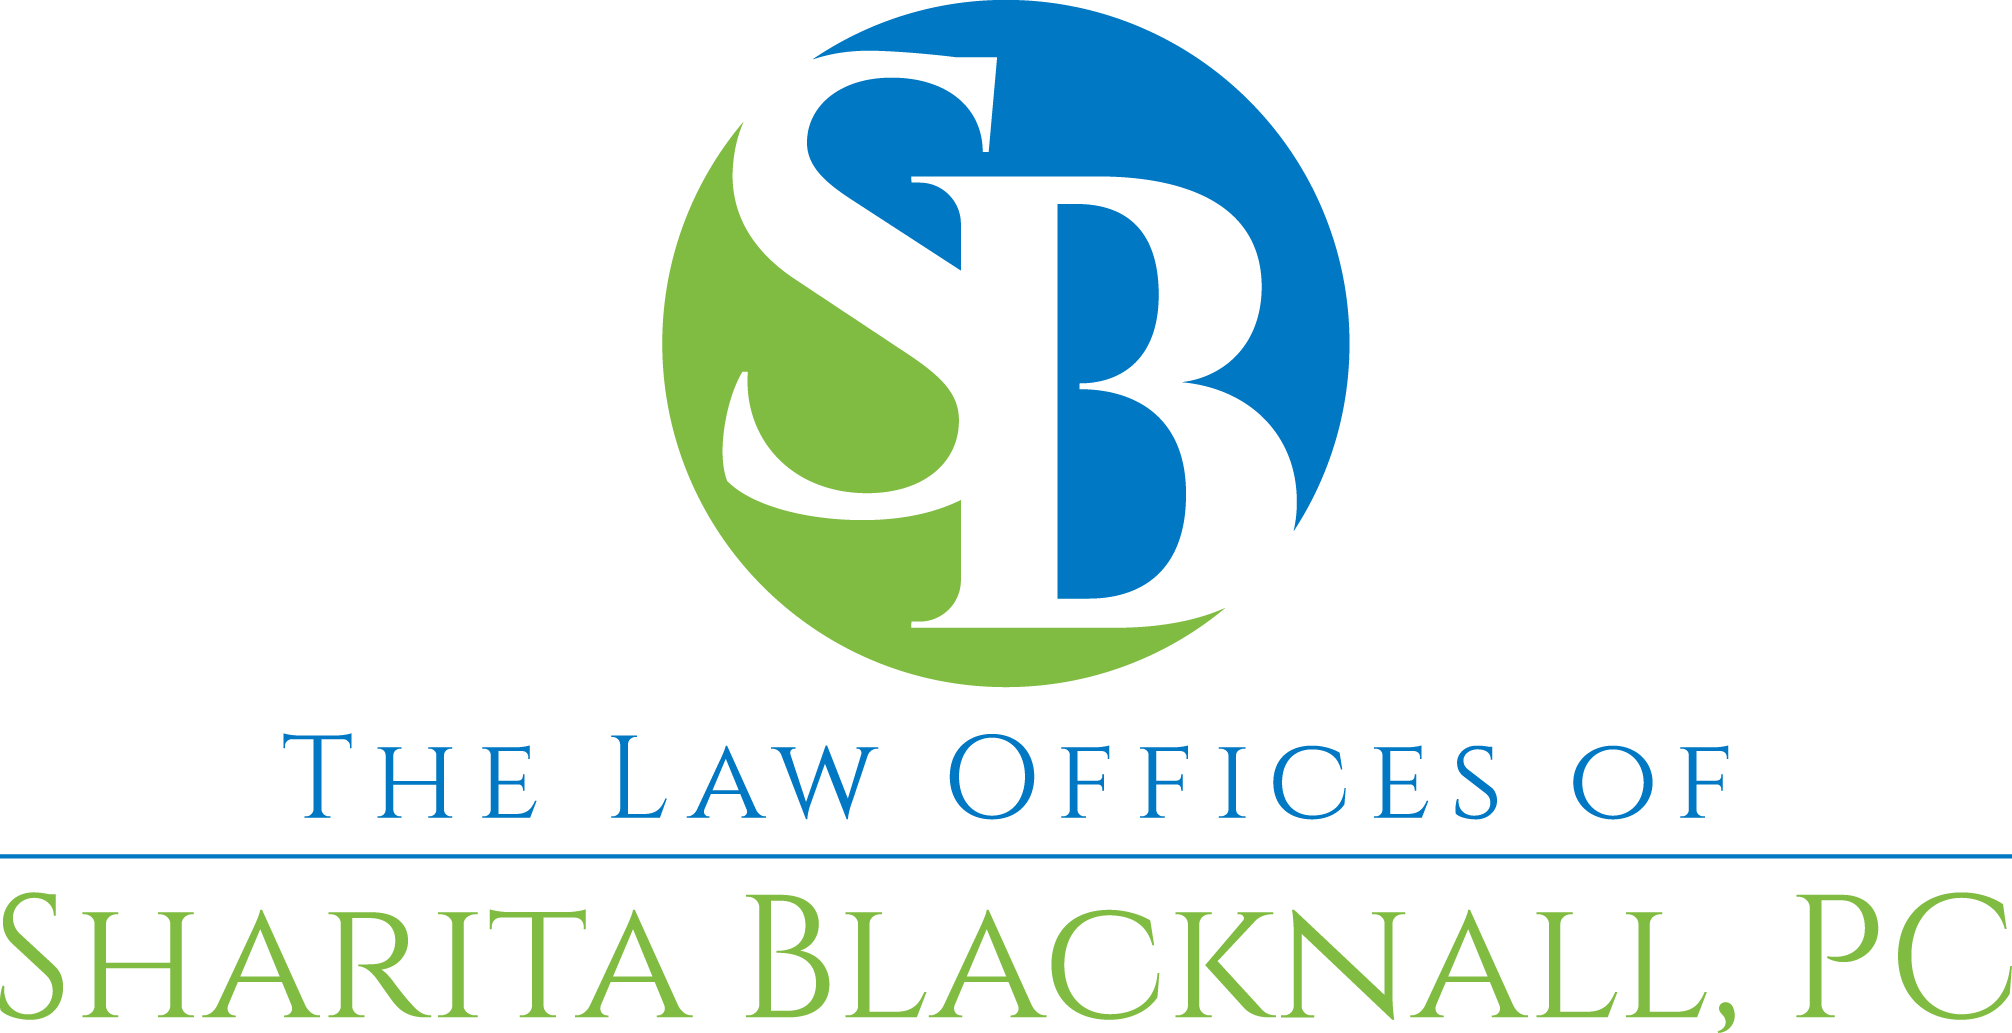 The Law Offices of Sharita Blacknall, PC Profile Picture